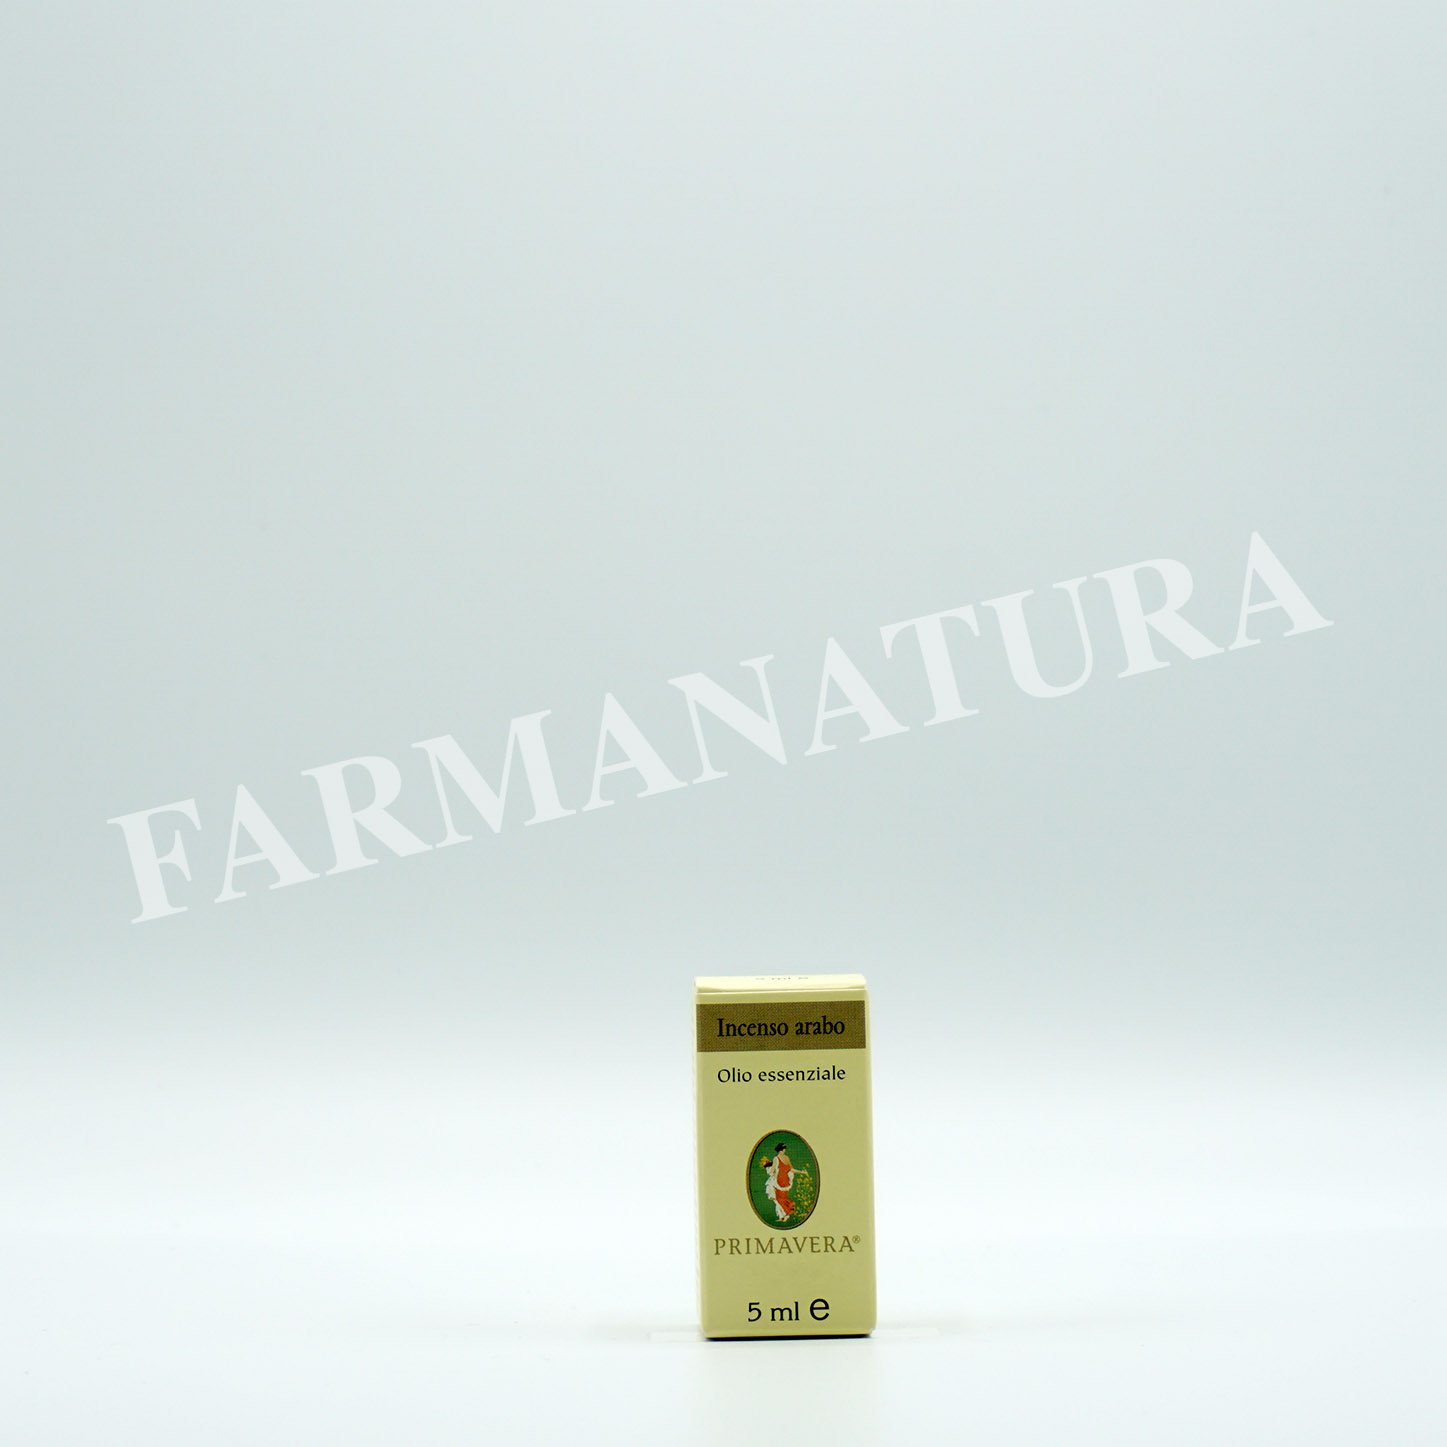 Incenso Arabo (Boswellia Sacra) O.E. 5 Ml